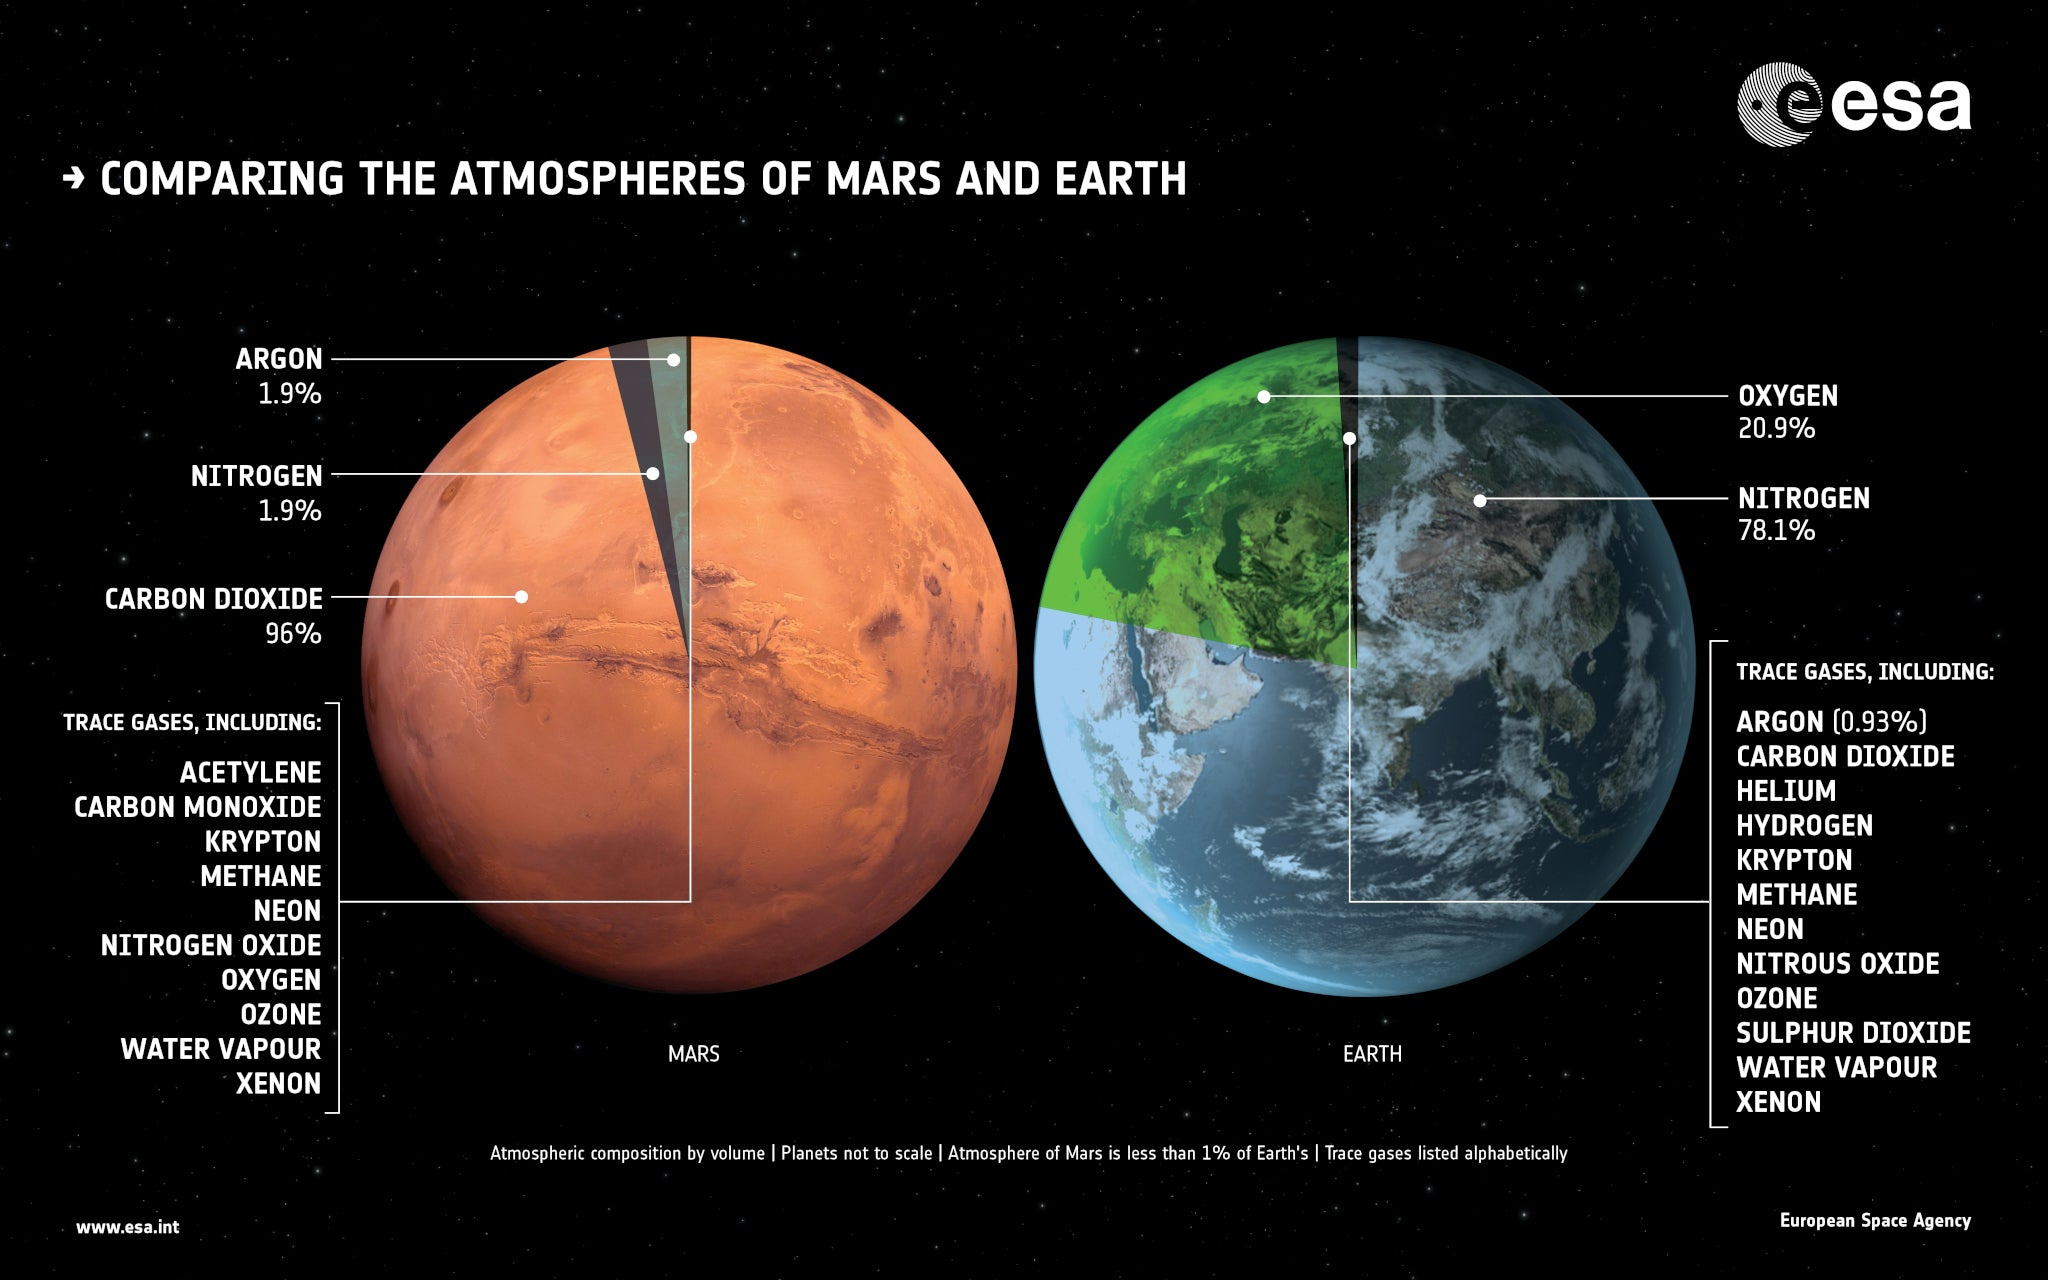 Comparing atmospheres of earth and mars